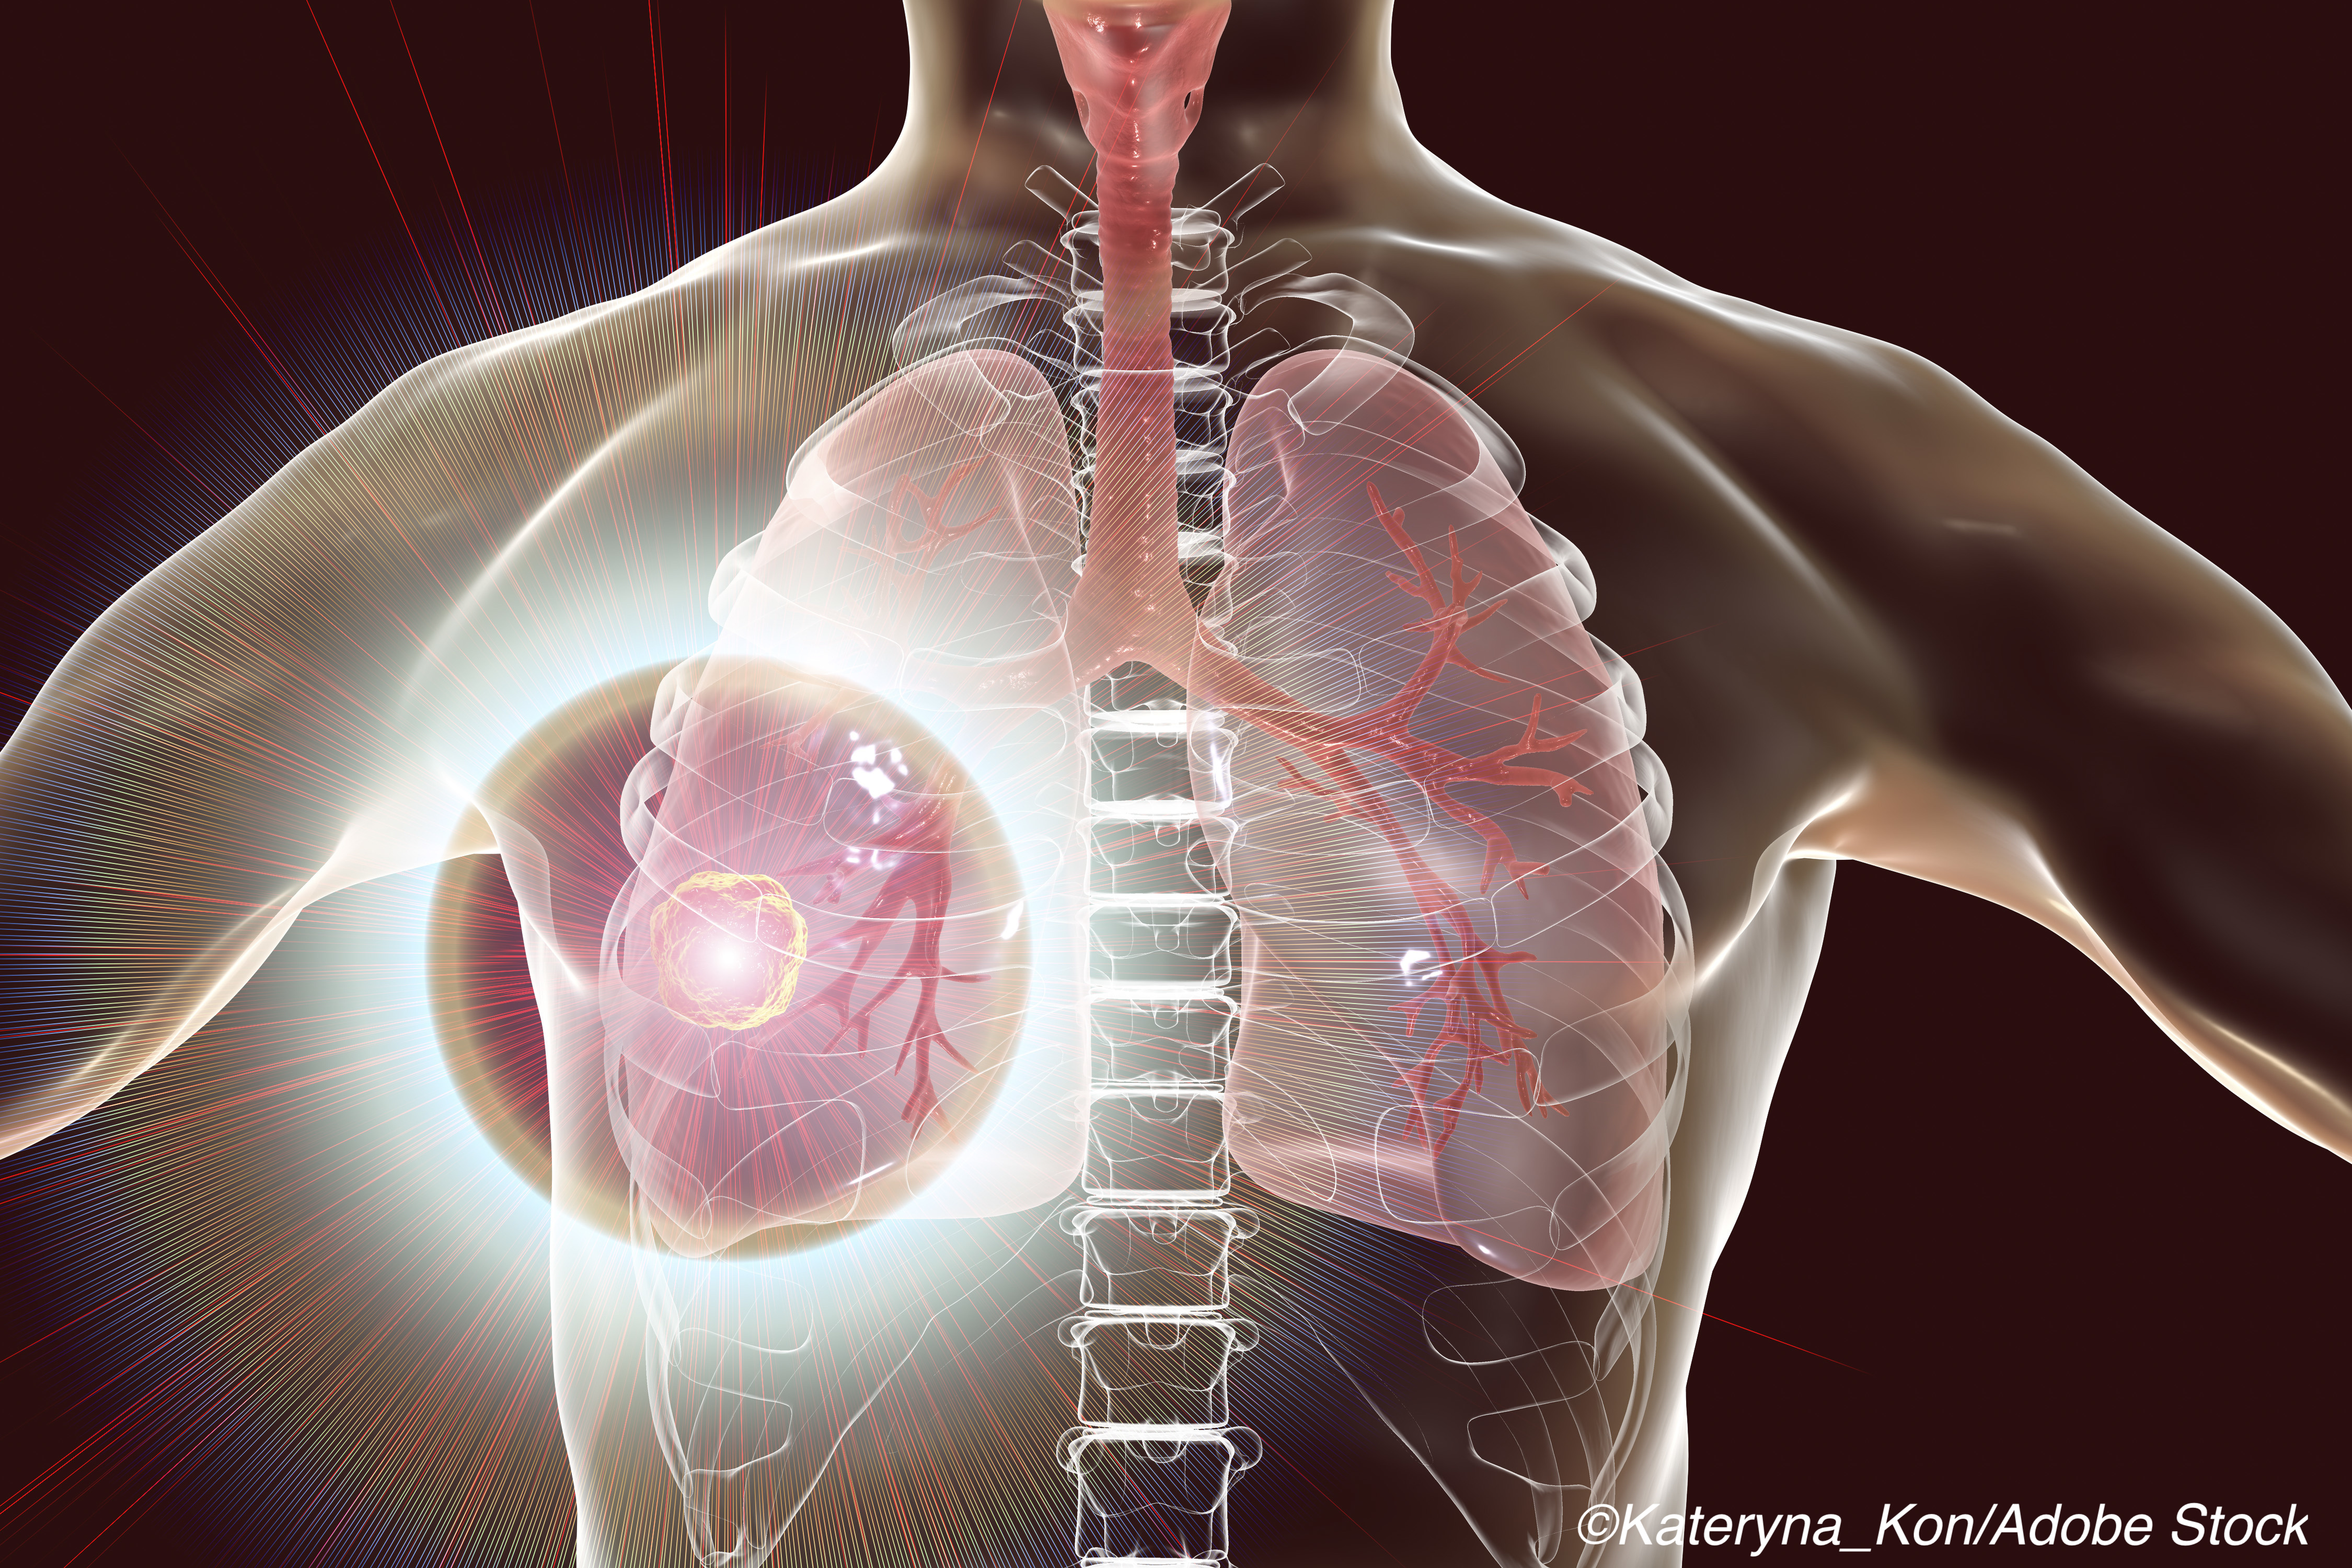 Decline in Death from NSCLC Points to Decreased Incidence and Better Survival Post-Dx